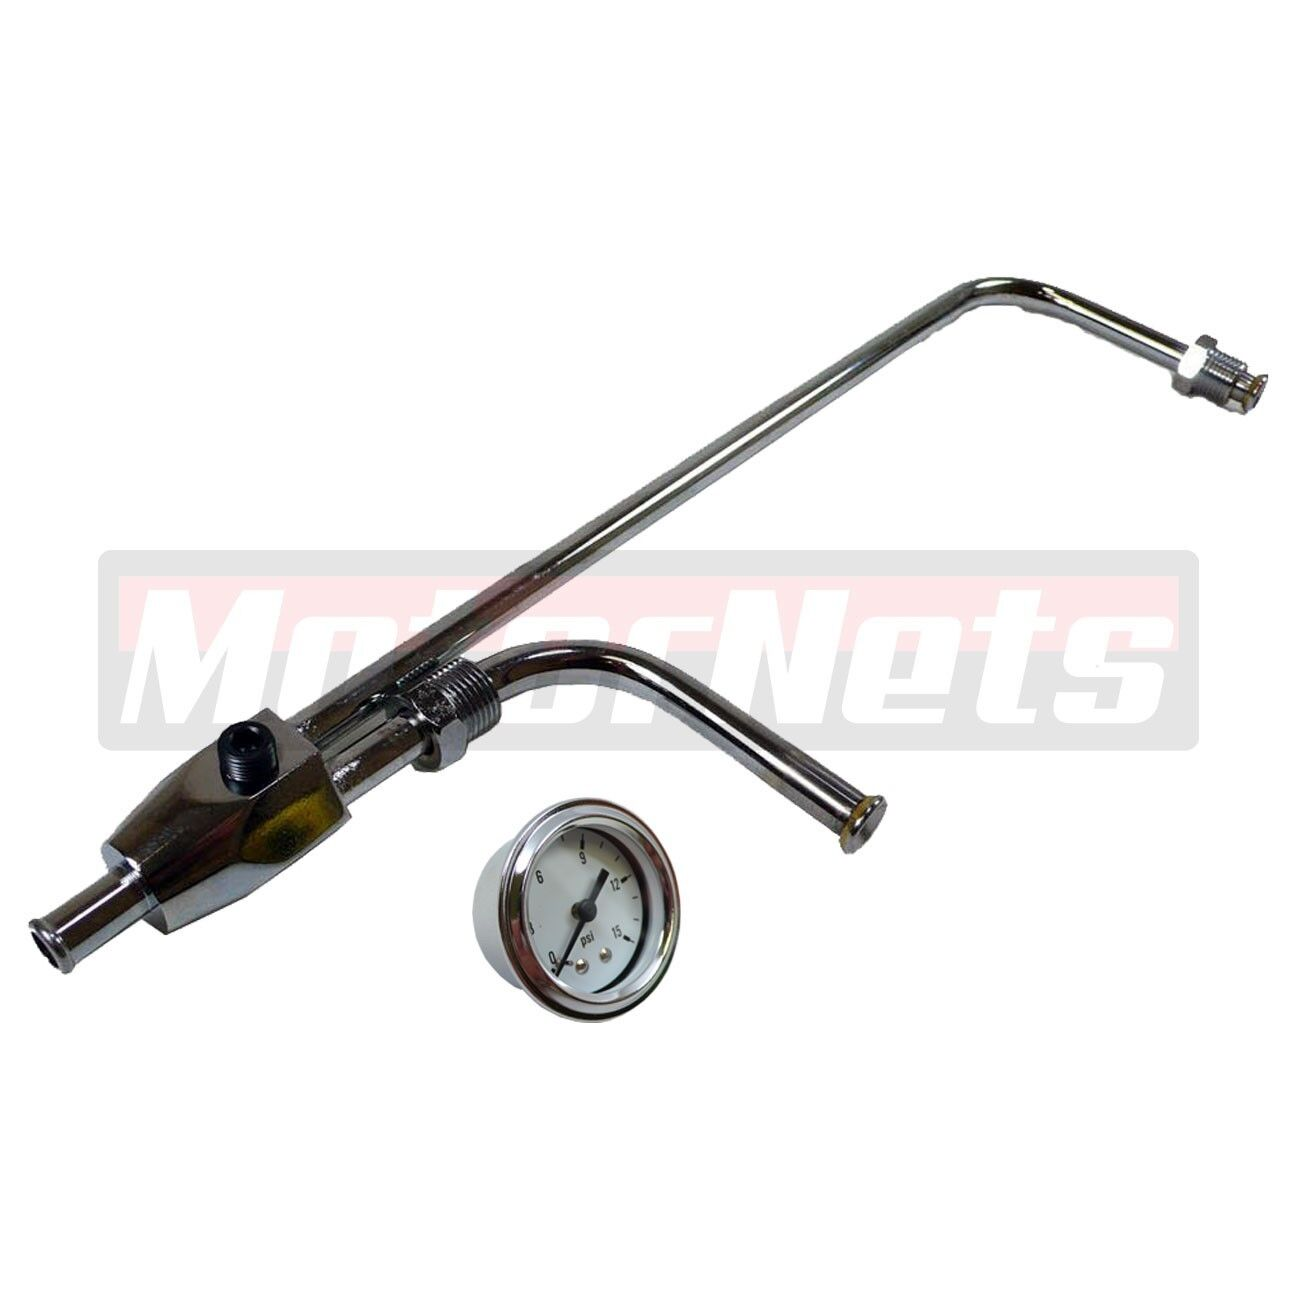 "Chrome 3//8/"" Fuel Line For Holley 3310 Series Carbs w// 1-1//2/"" 15 PSI Black Gauge"